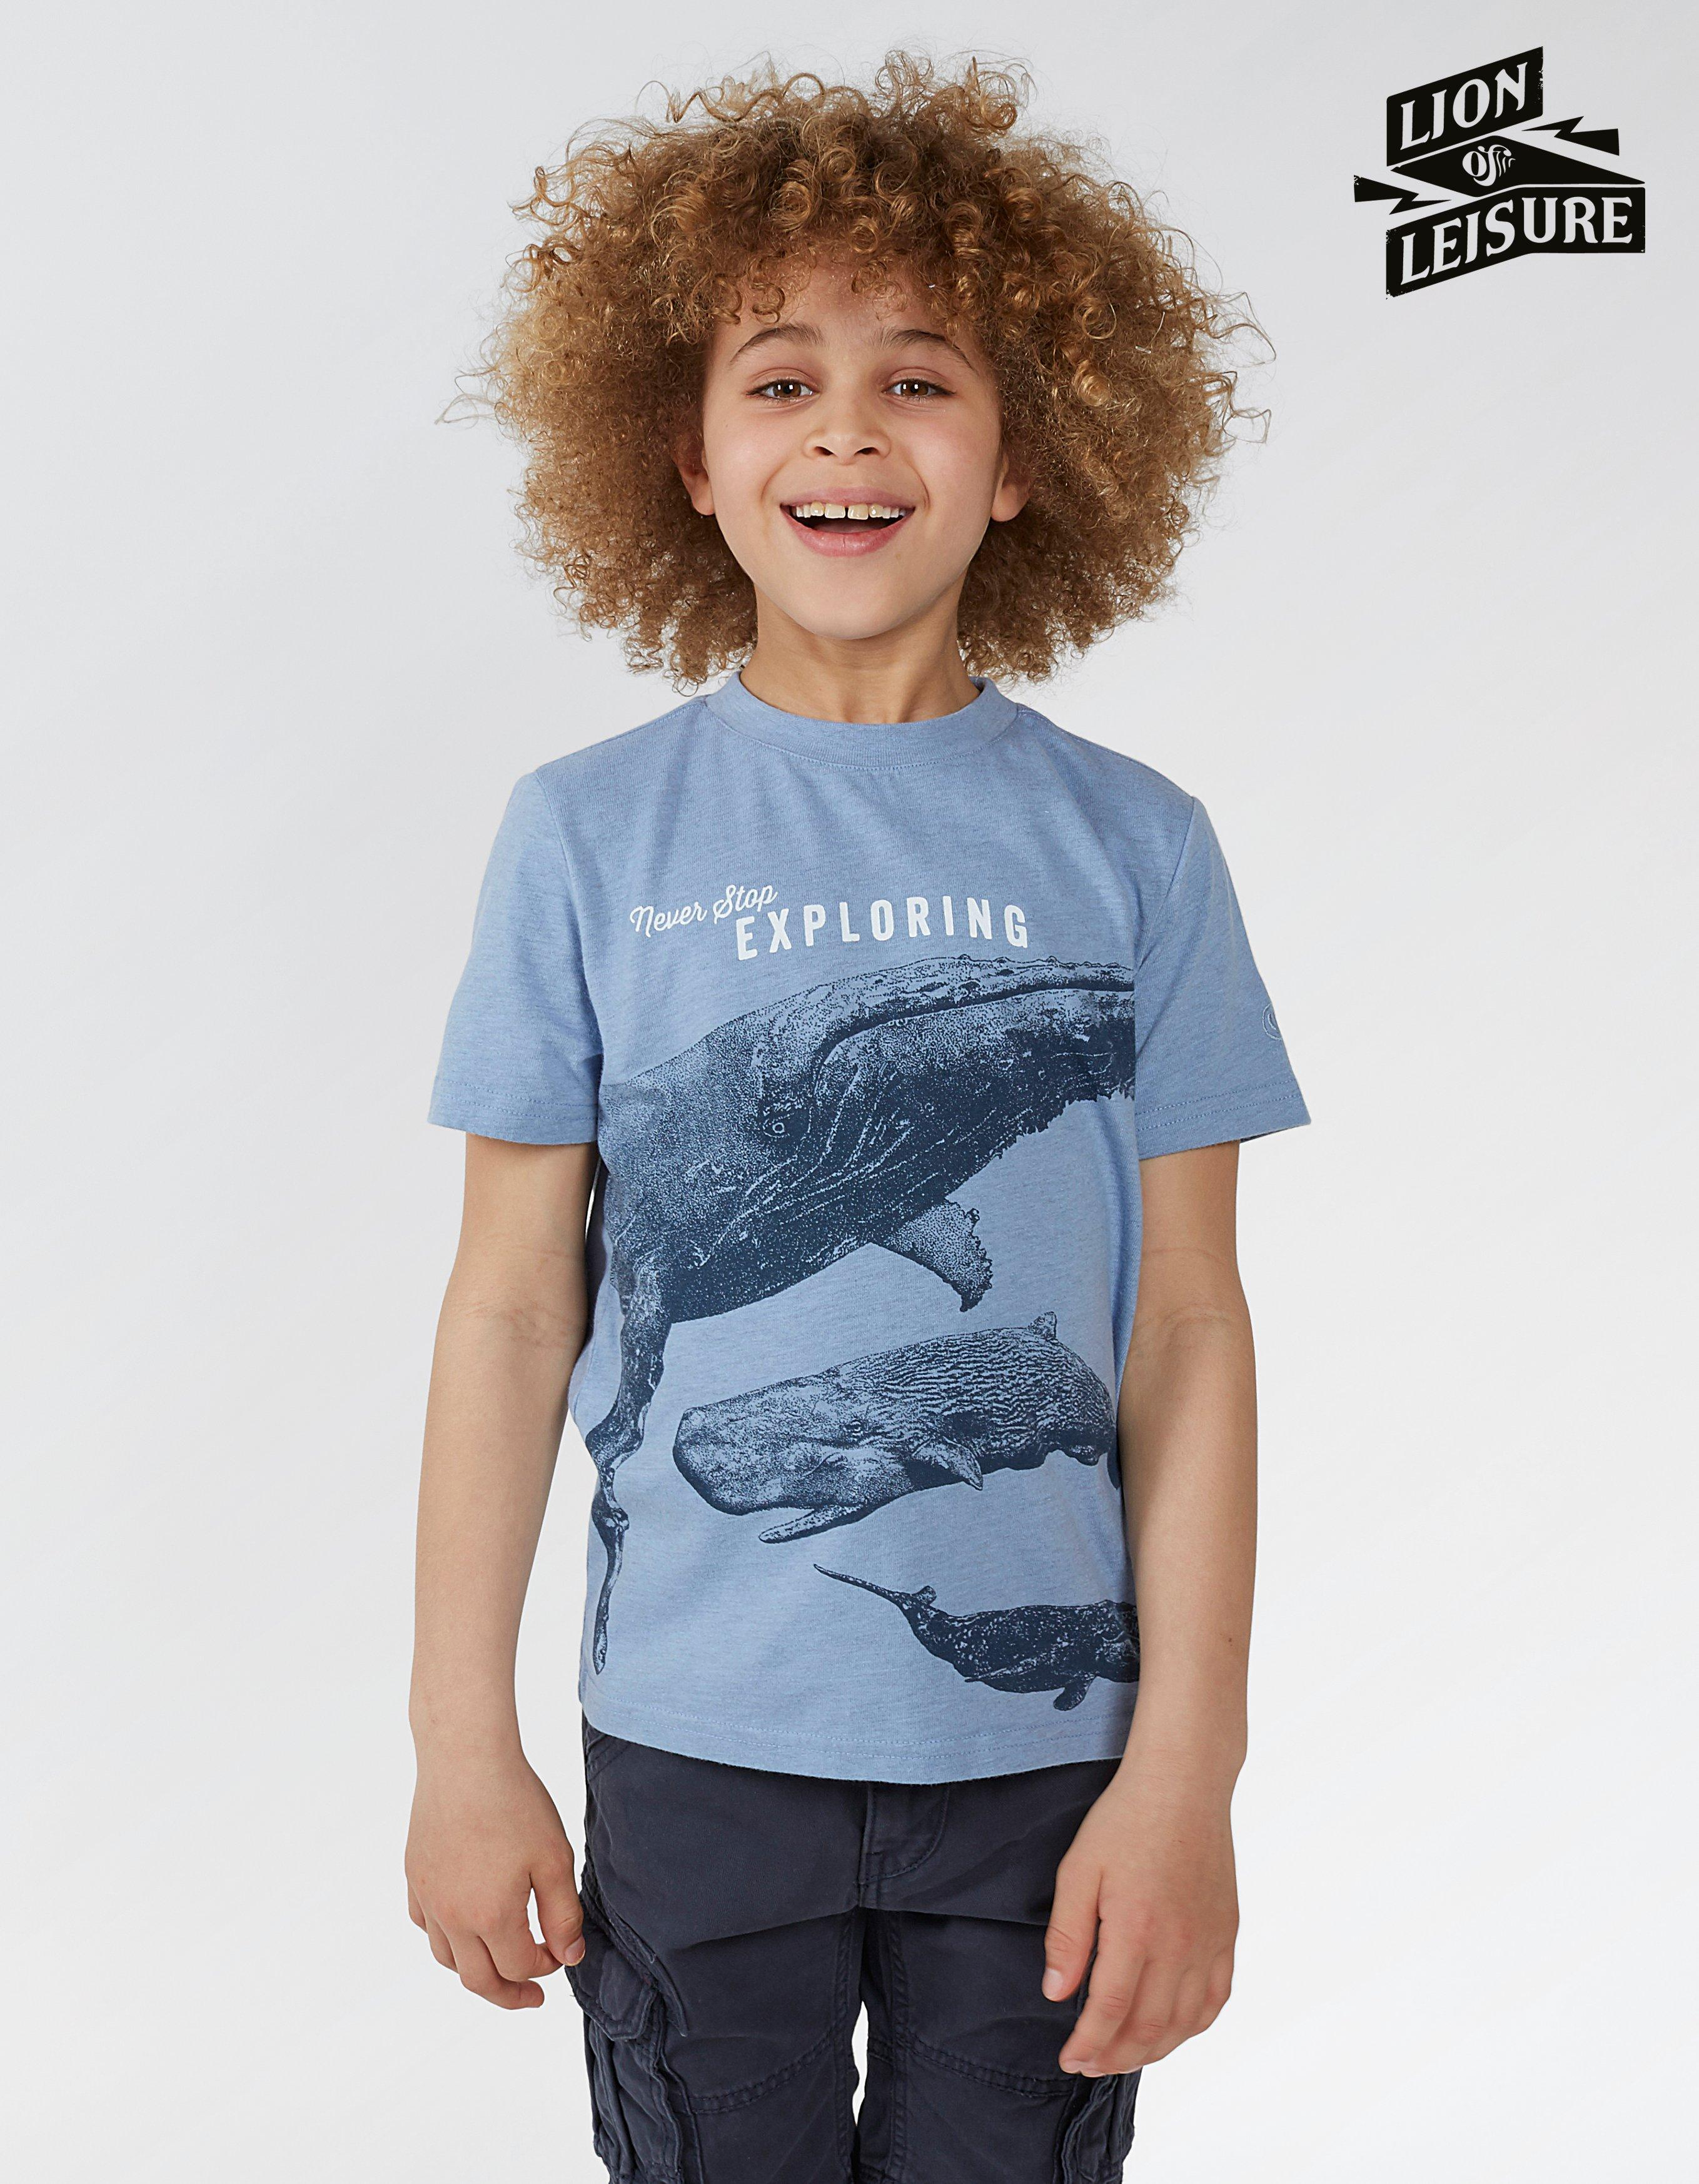 Lion of Leisure Whale T Shirt